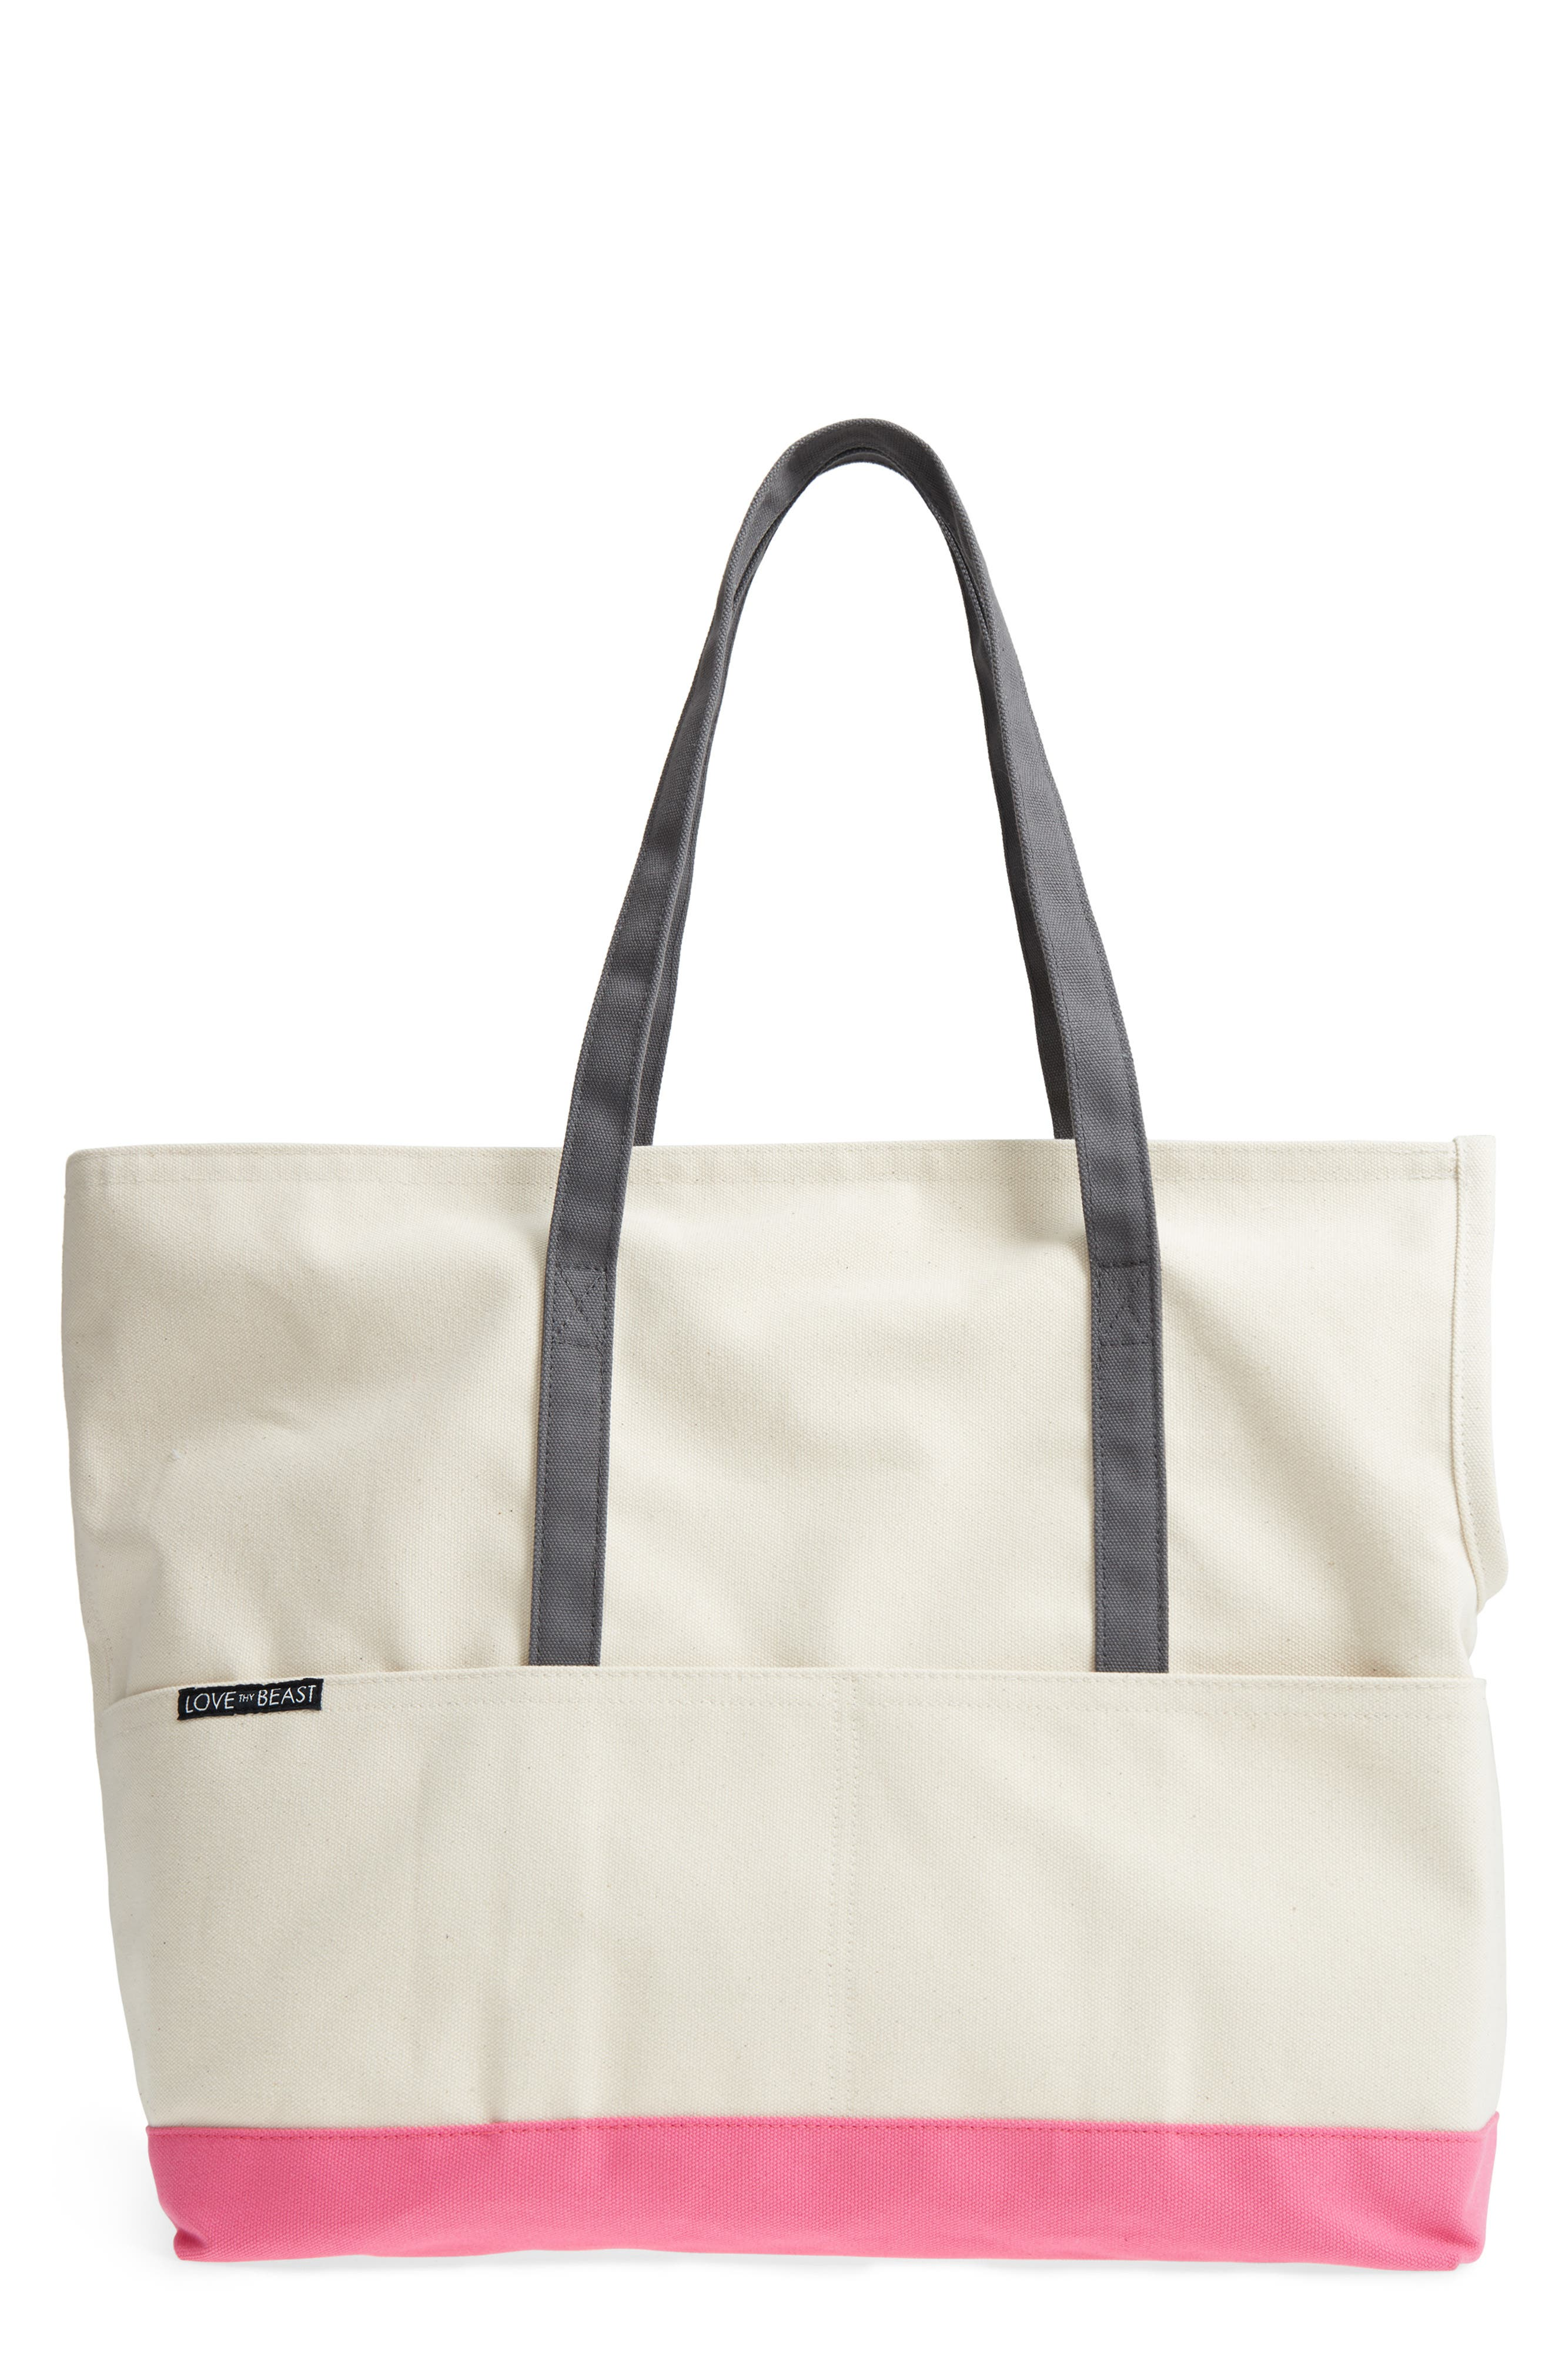 LOVETHYBEAST Large Canvas Pet Tote, Main, color, 250